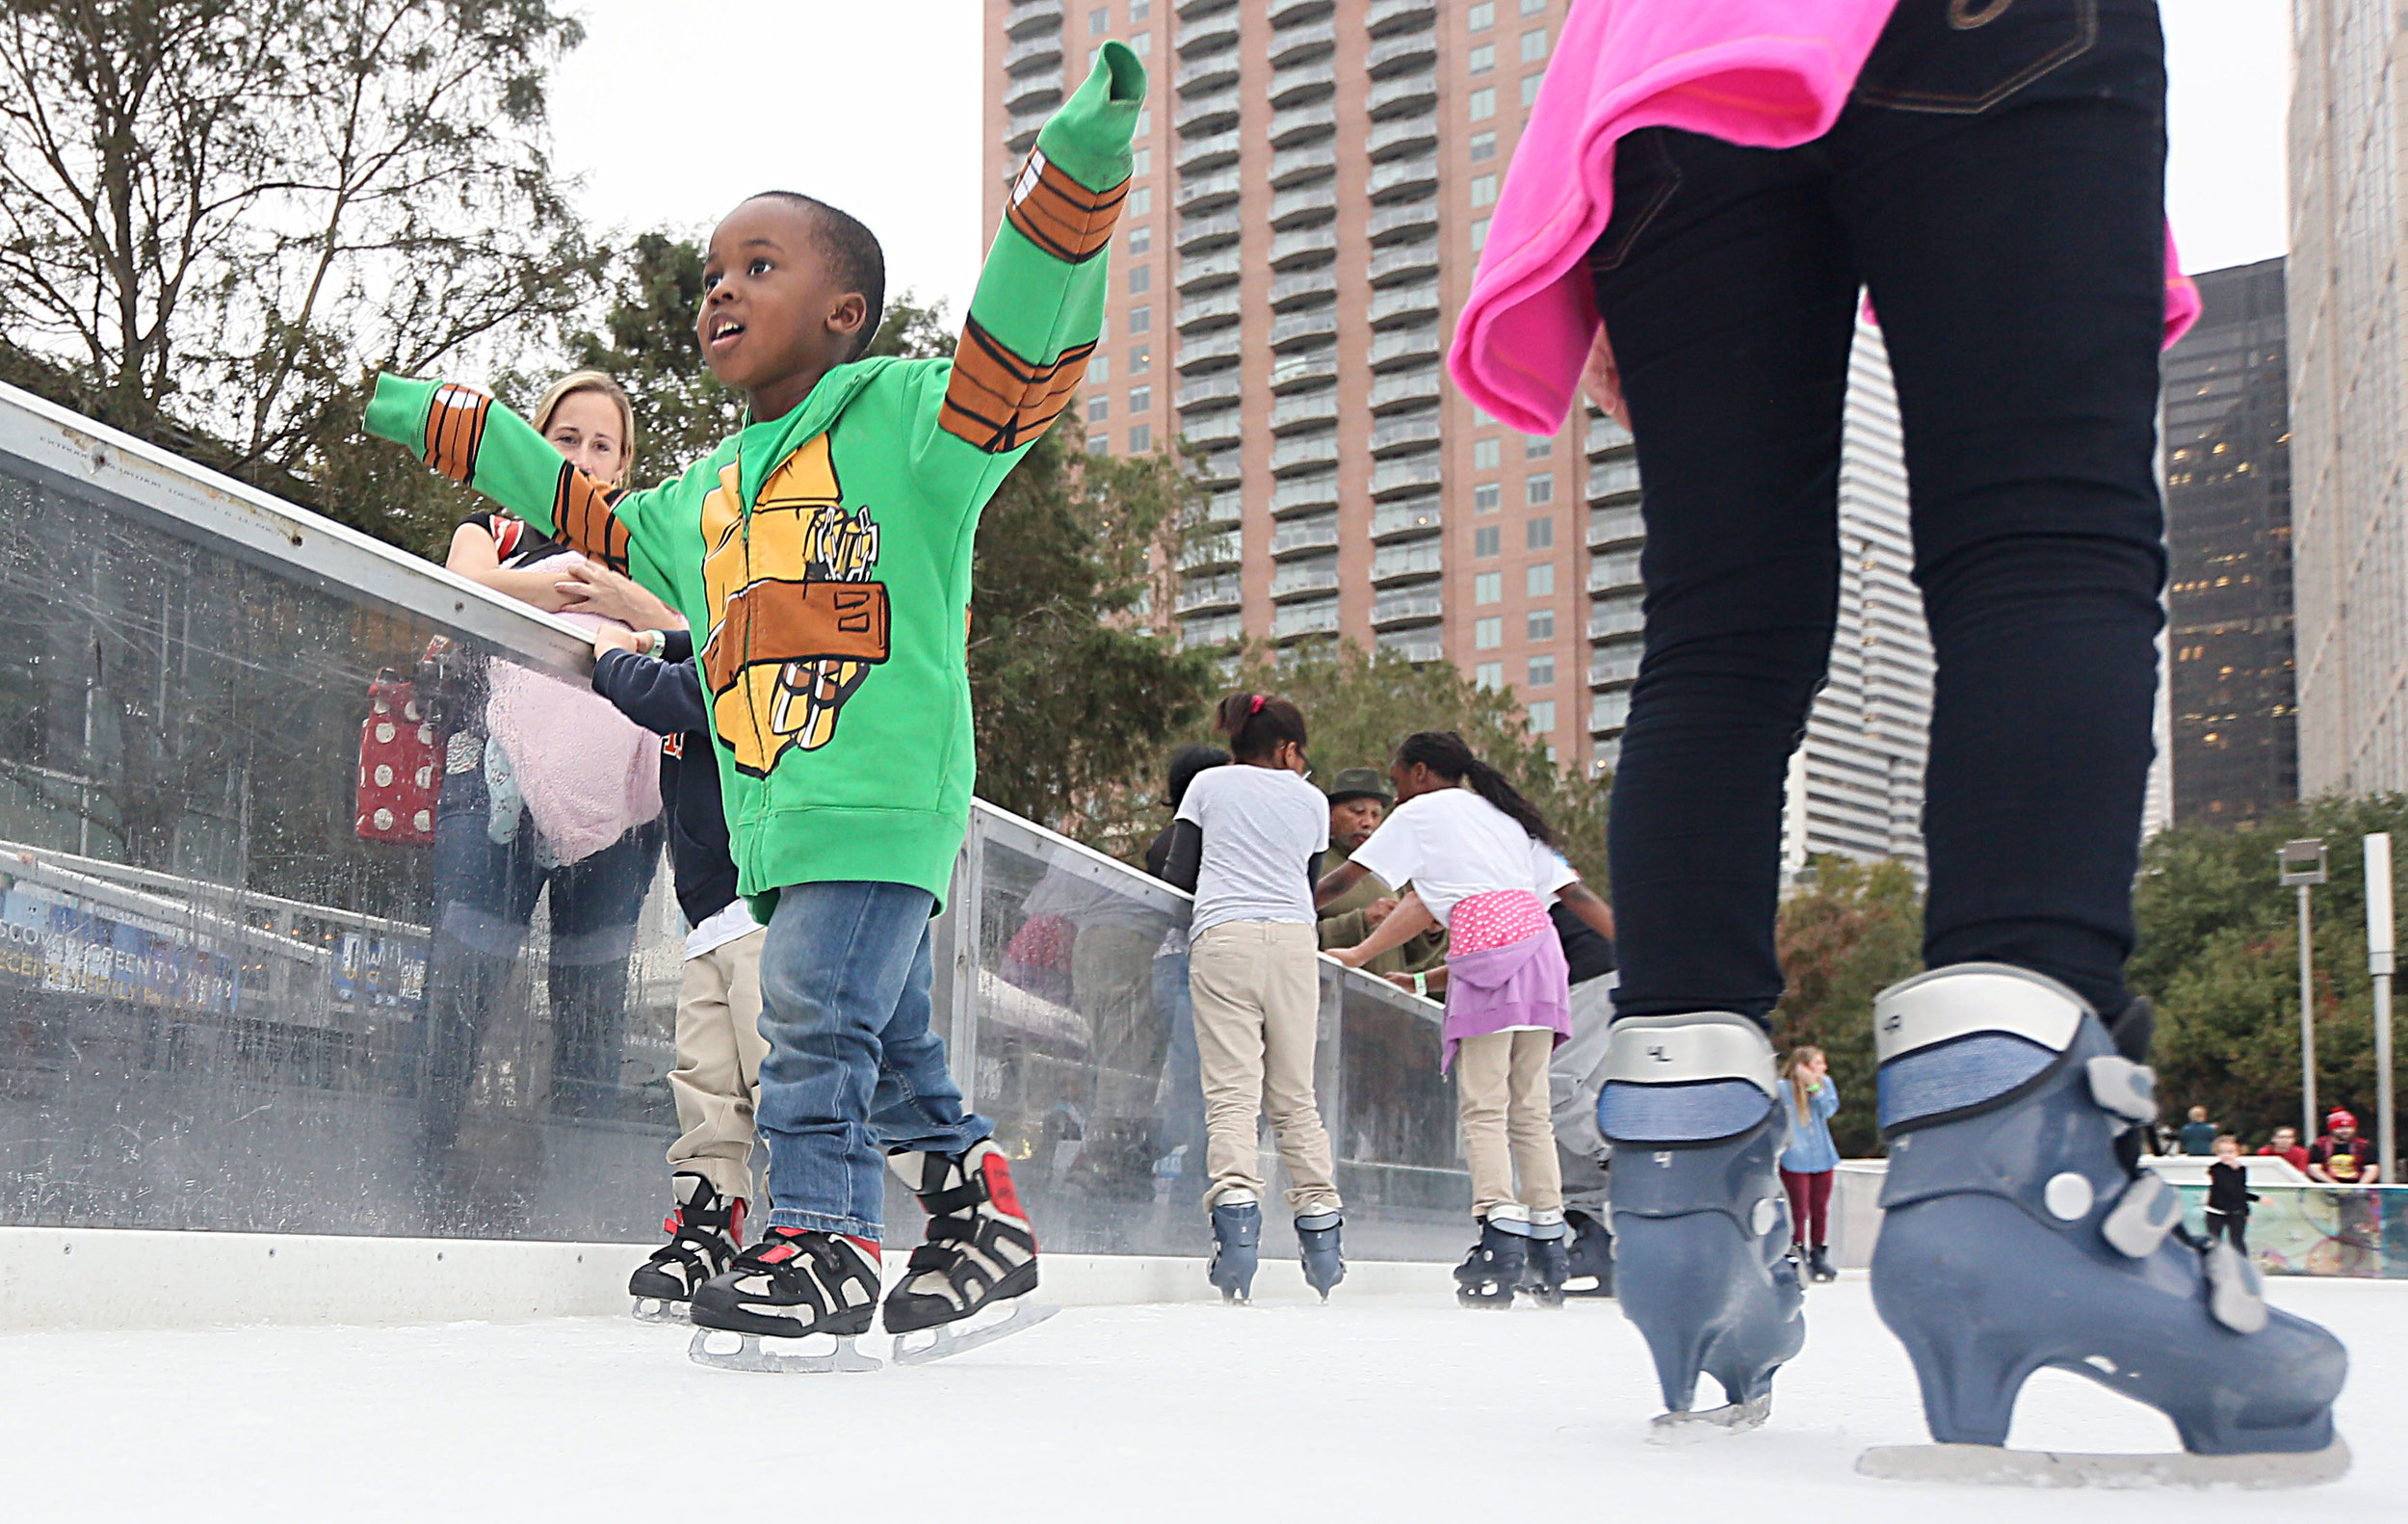 My colleague Houston Chronicle photographer Jake Nielsen died today at age 54. He had a childlike enthusiasm about every assignment, including my  #YearOfJoy  ice skating party. He took this photo. I'll miss him. To help his family with medical costs, there is this Go Fund Me account. Every bit helps. RIP, Jake.  https://www.gofundme.com/give-it-up-for-jake?pc=fb_u_g